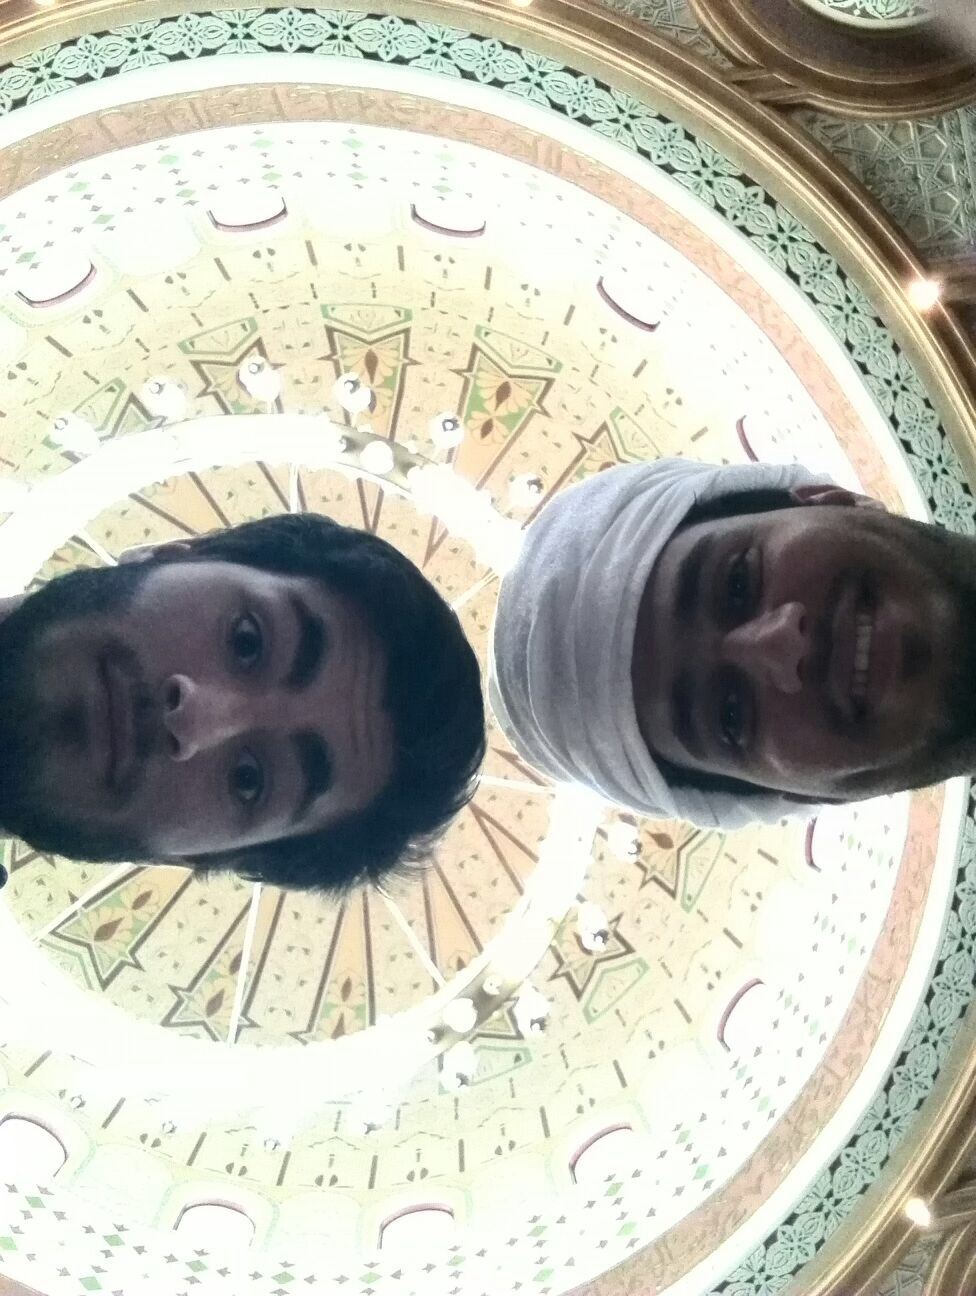 My language partner, Ahmed, and I with the ornate ceiling of a mosque above us.